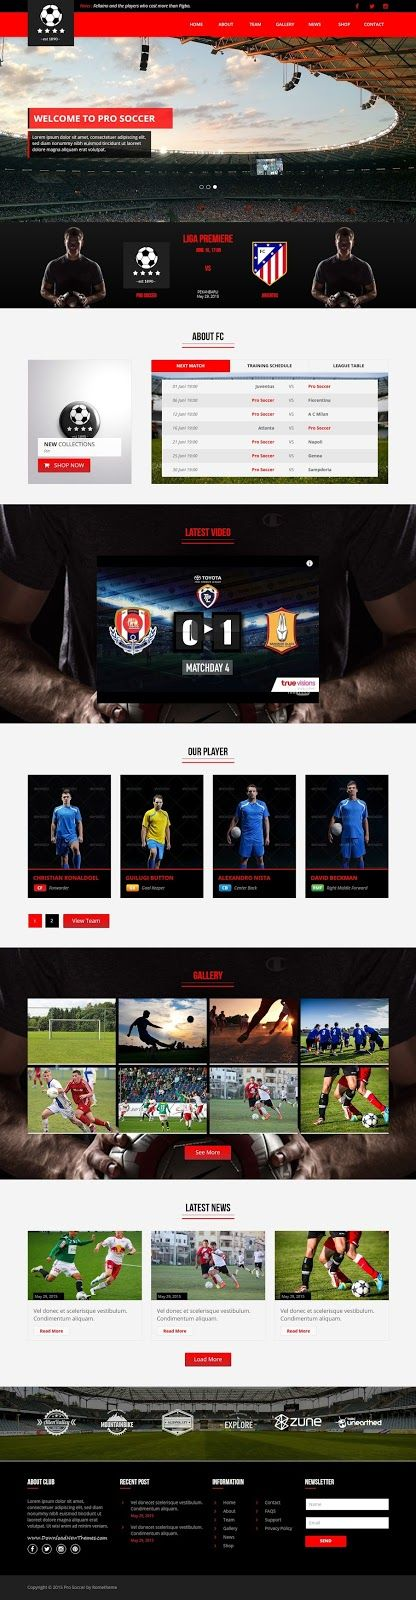 Pro Soccer is the Multipurpose template option for web developer or #football club, soccer club who needs a web template to promote and introduce their #sports club #website